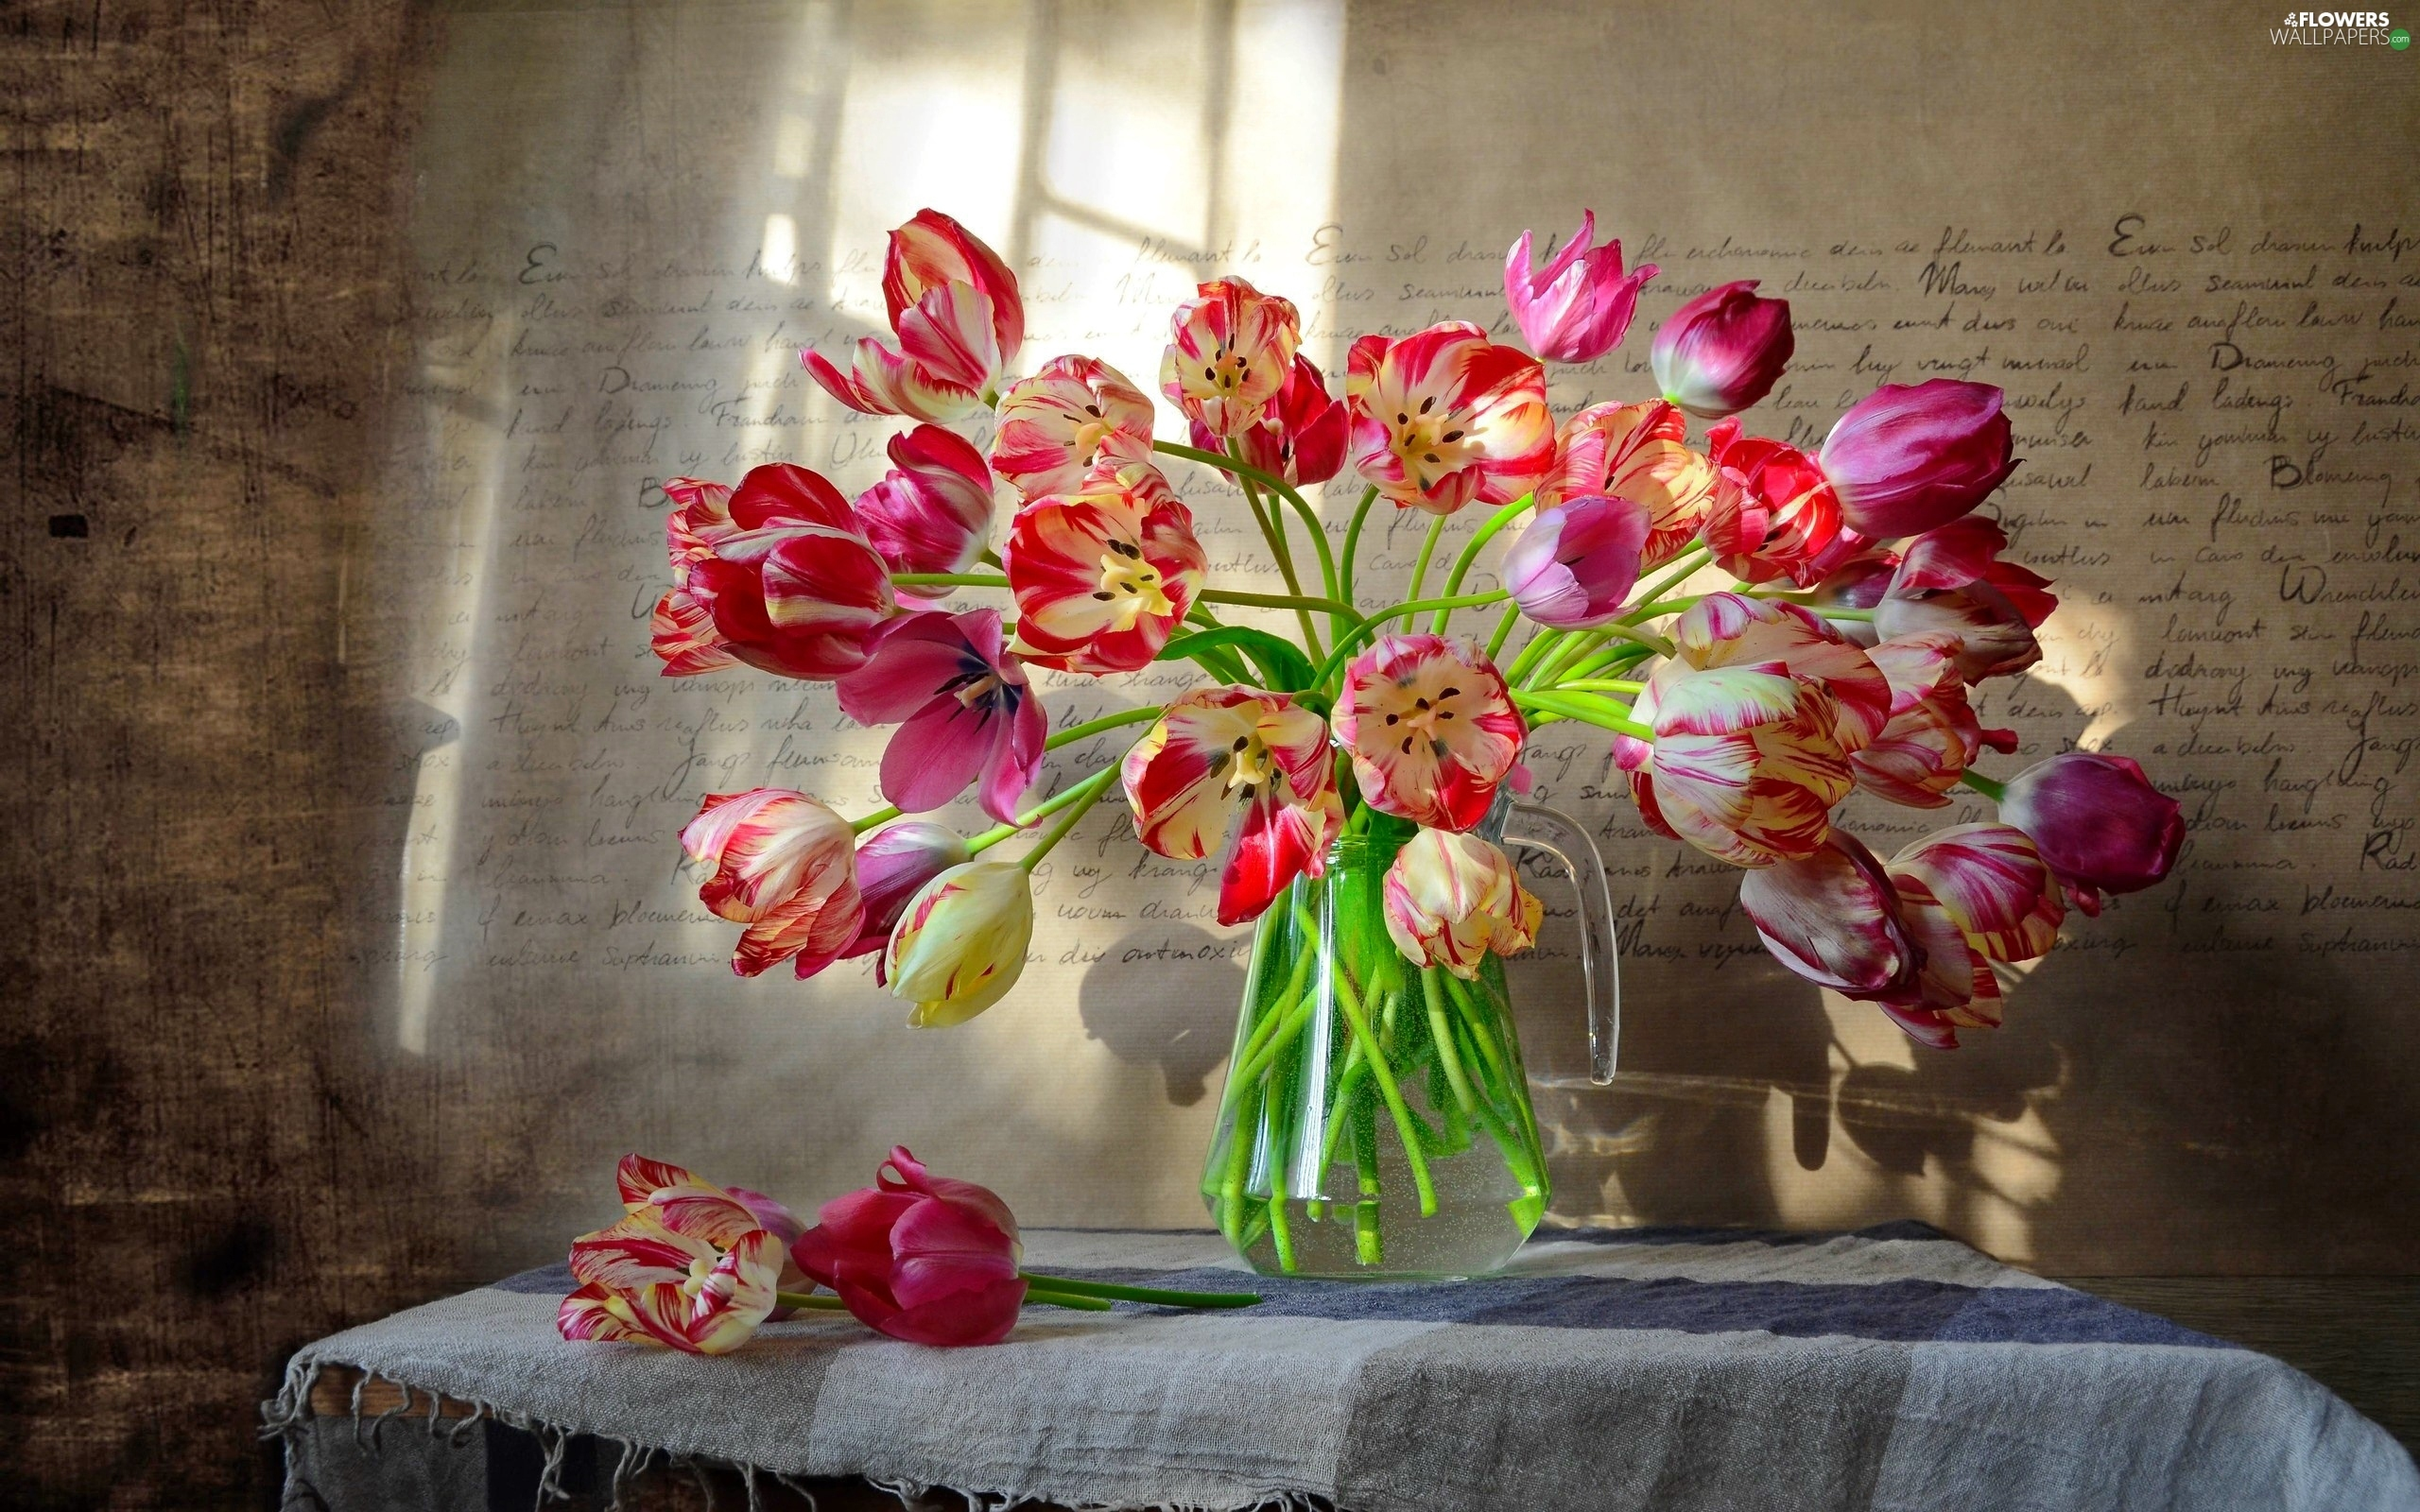 flash, ligh, luminosity, sun, Tulips, bouquet, Window, Vase